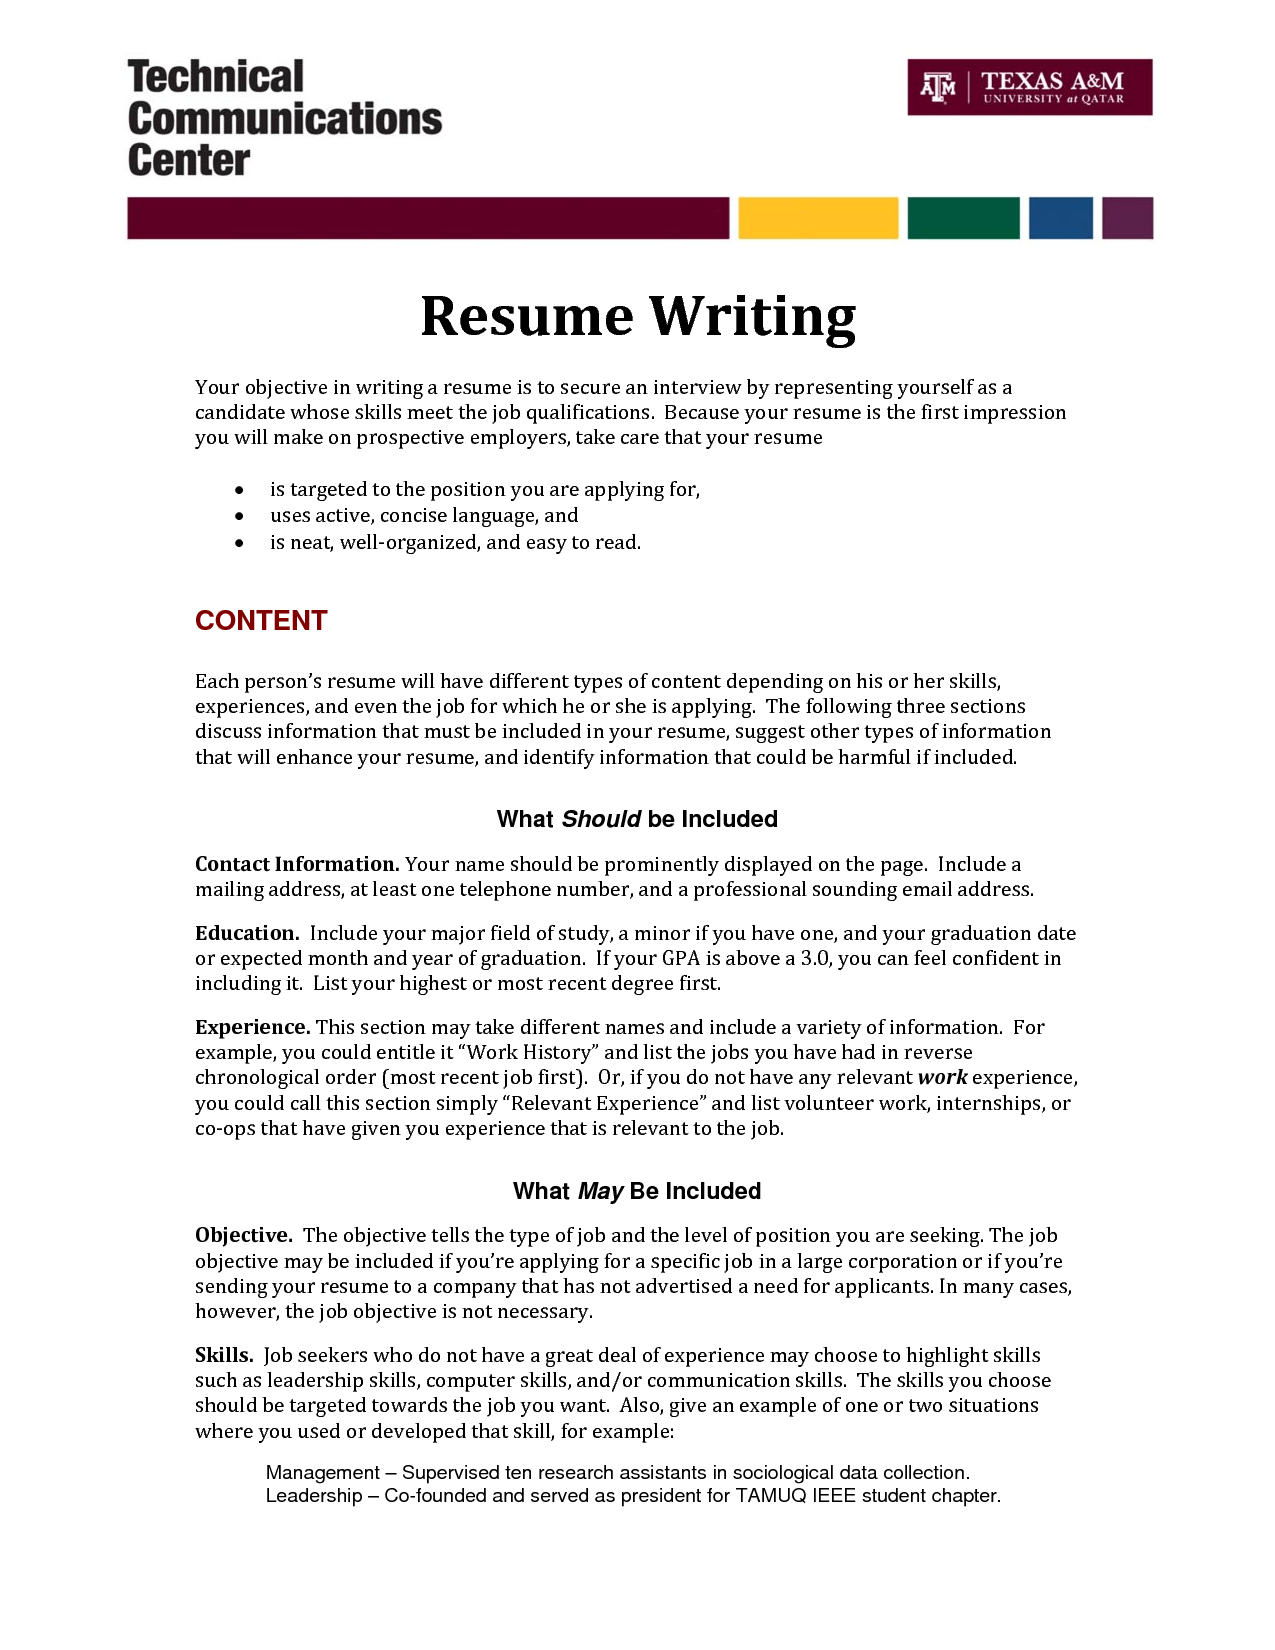 example resumes for servers sample customer service resume example resumes for servers resumes computer skills section resumagic examples of business resumes business data analyst